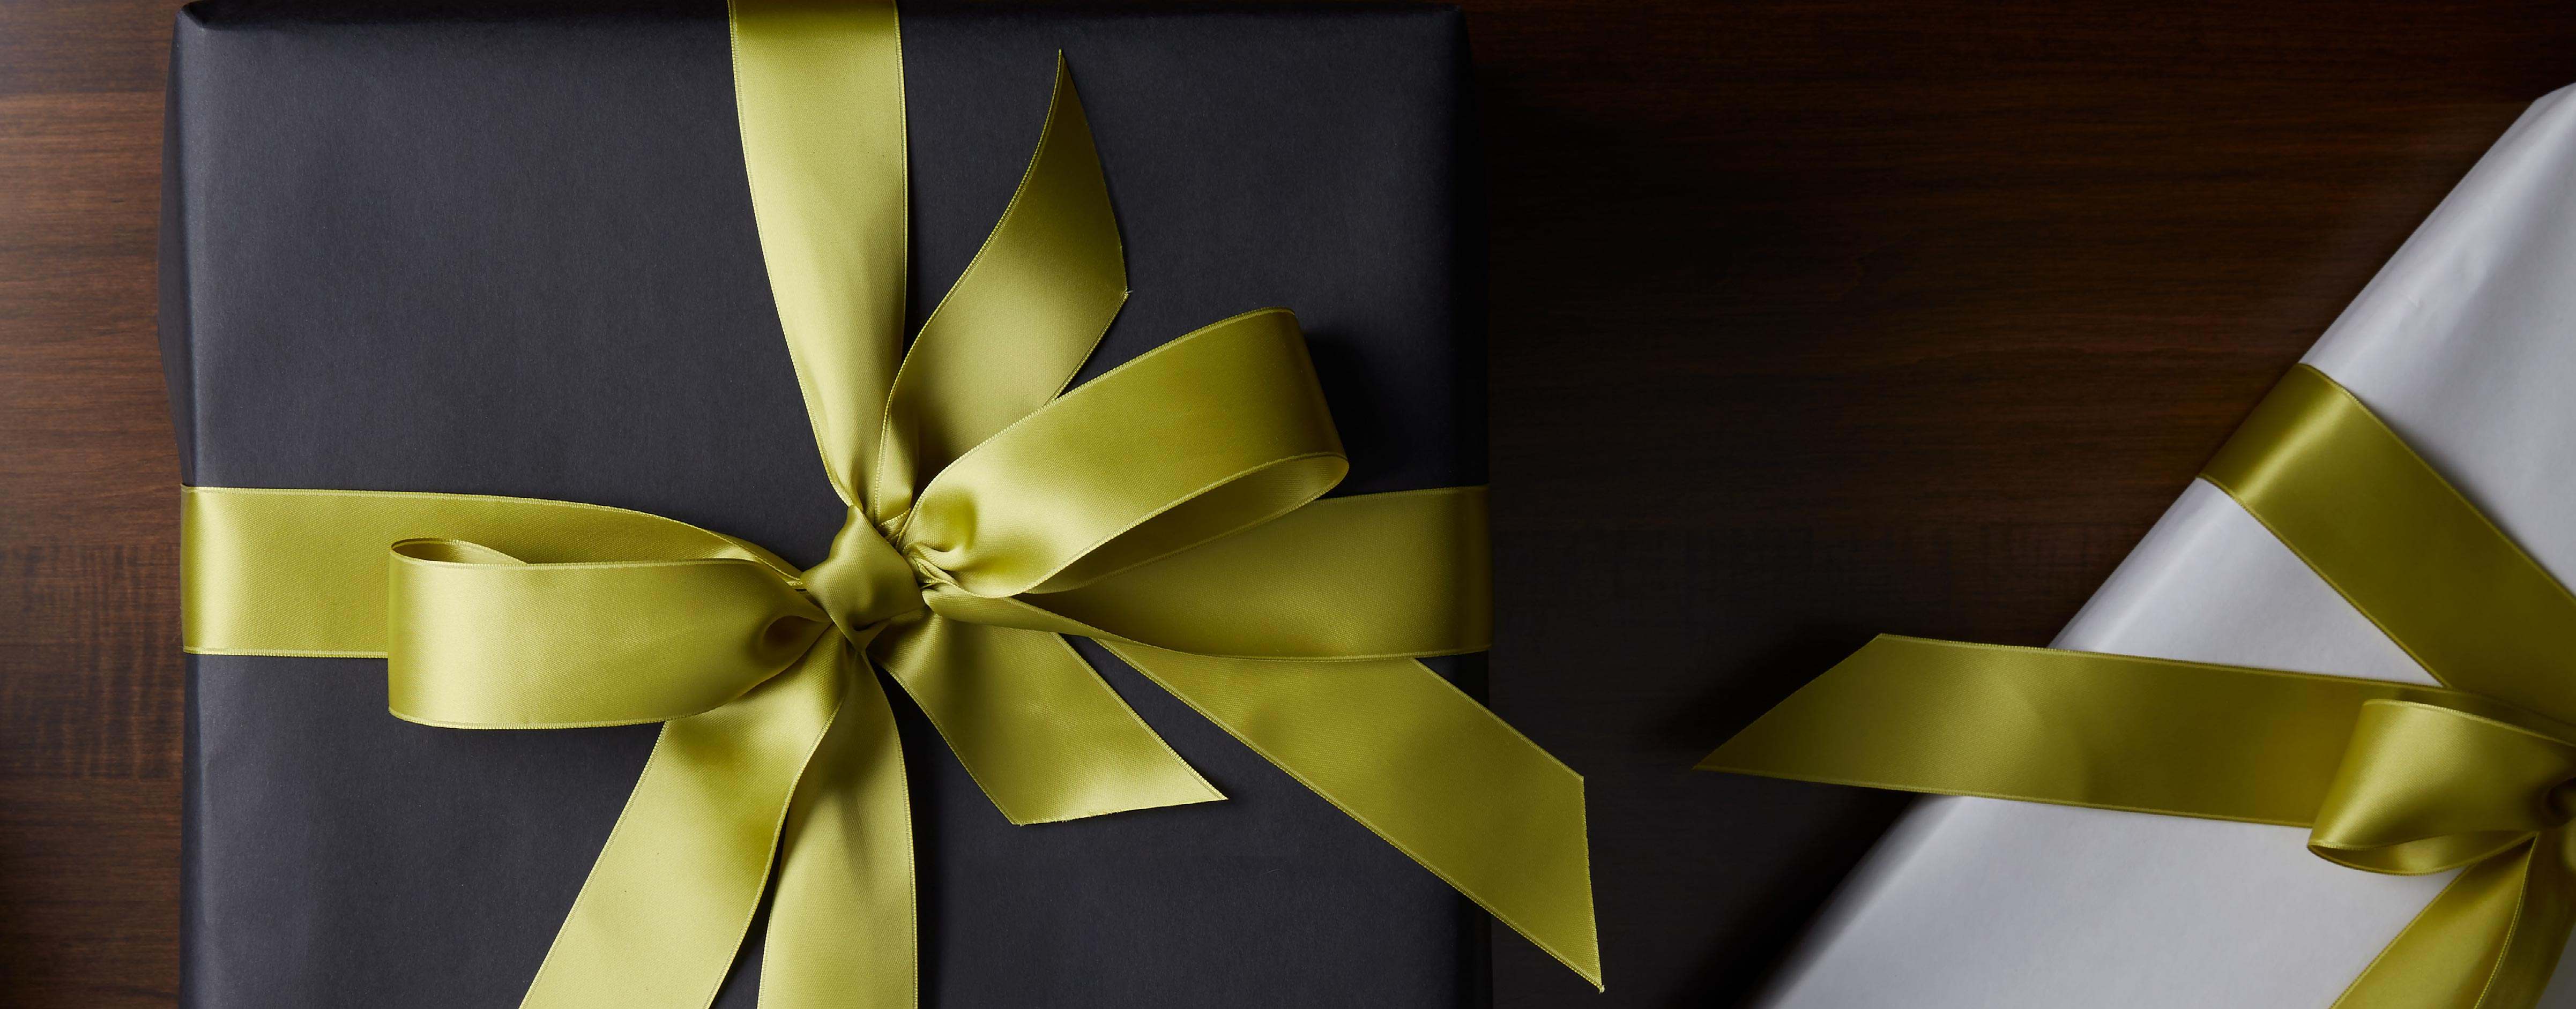 Holiday wrapped gifts image